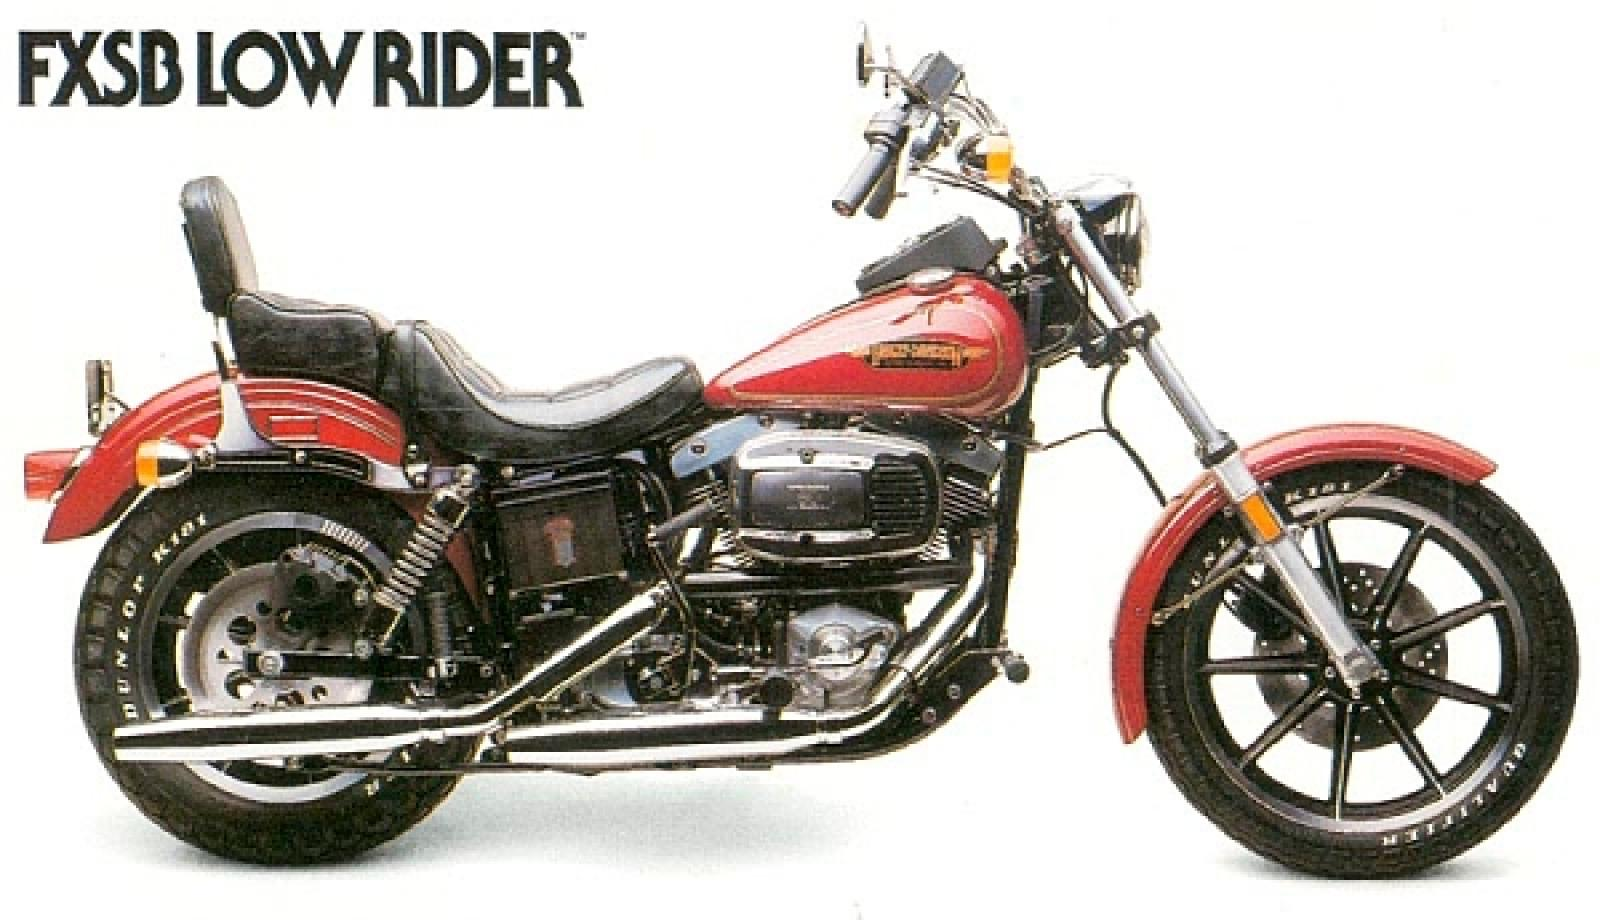 1990 Harley-Davidson FXRS 1340 SP Low Rider Special Edition - Moto